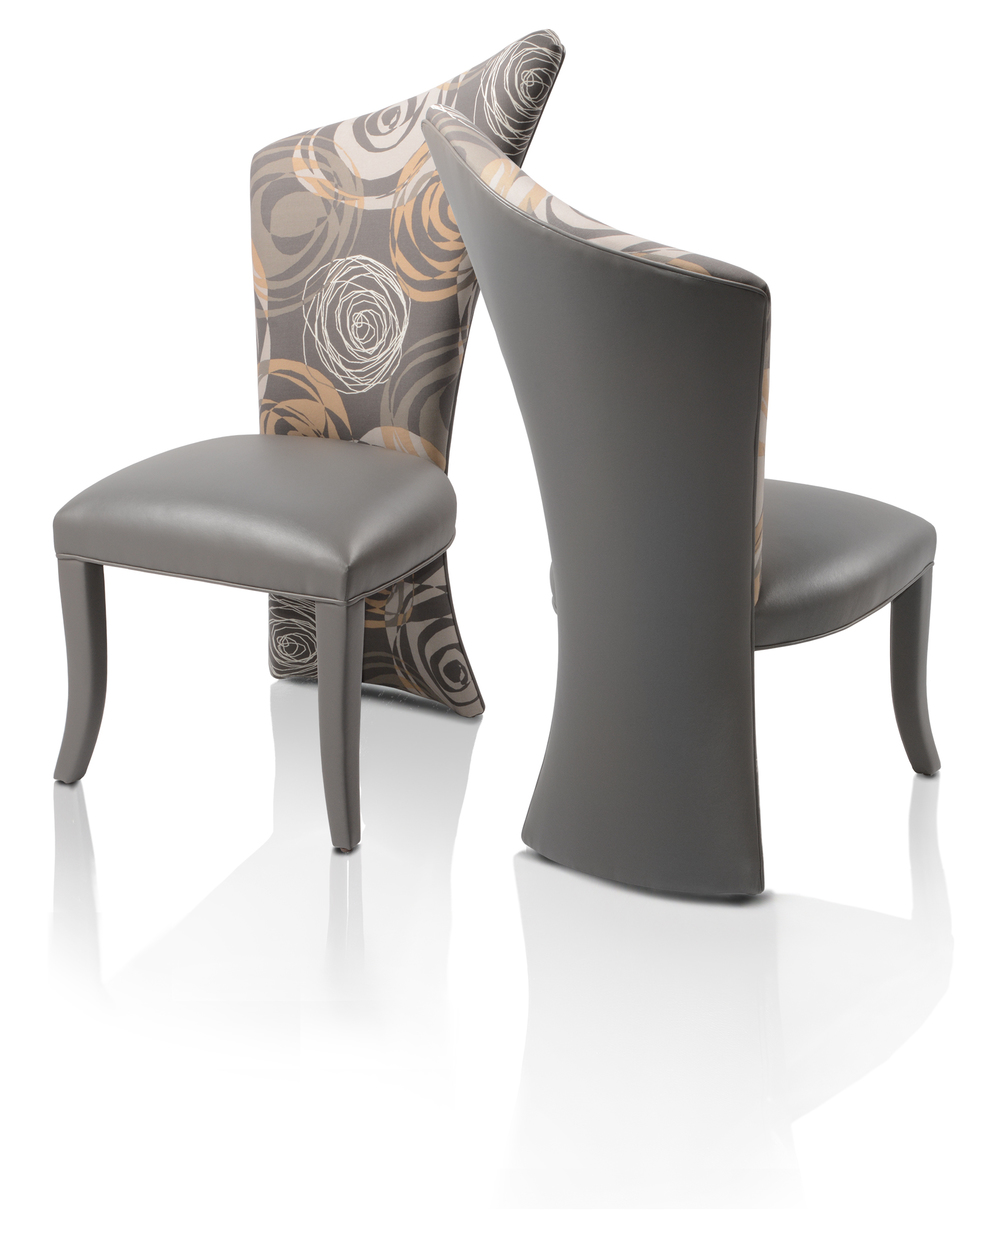 Chair_240-01_Closed Back_Right on Pewter_Castillo-Metal_PIC-1.jpg